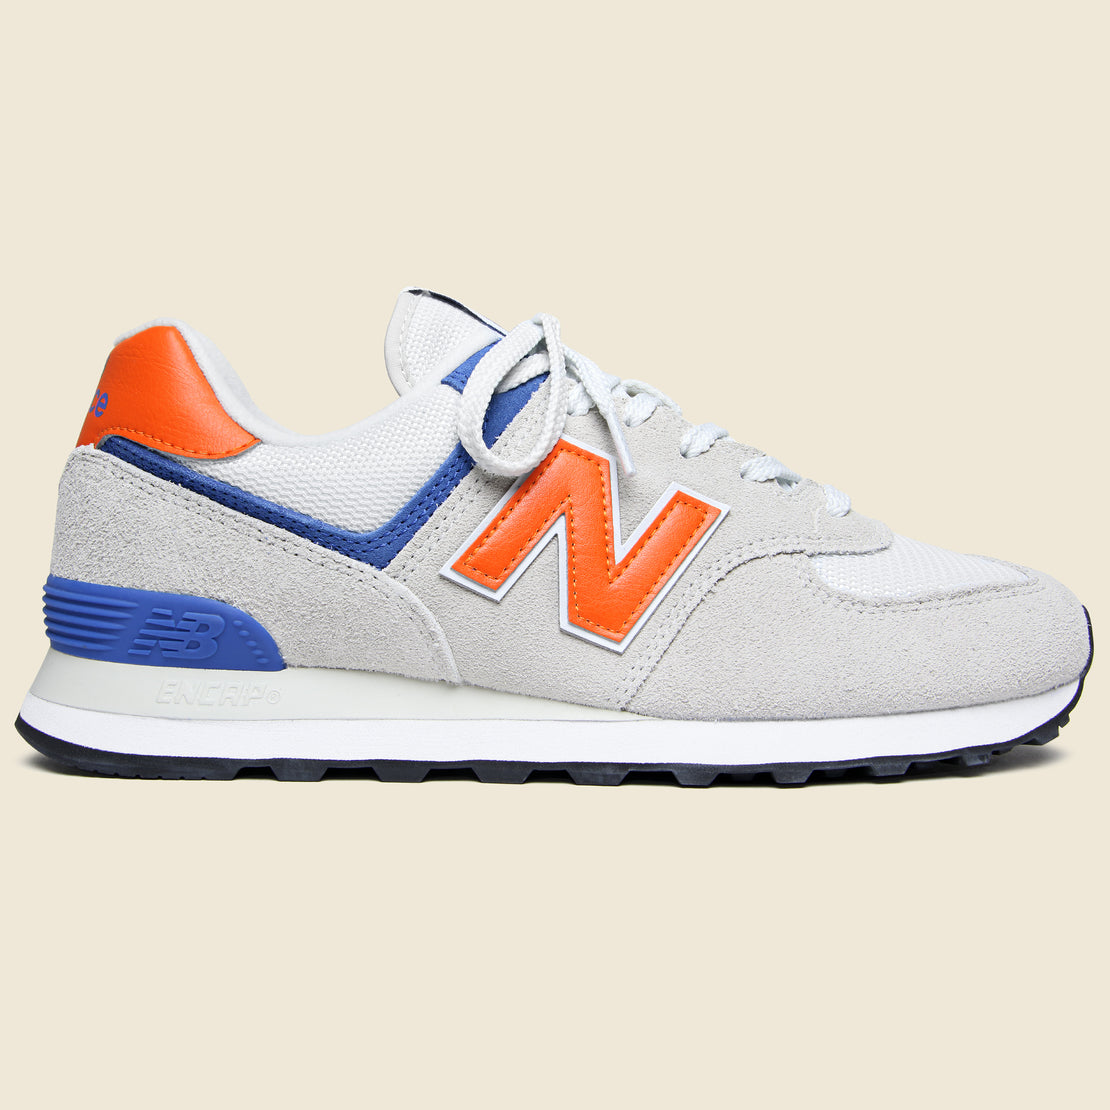 meet 1e39b 43686 New Balance 574 Sneaker - Blue Orange ...